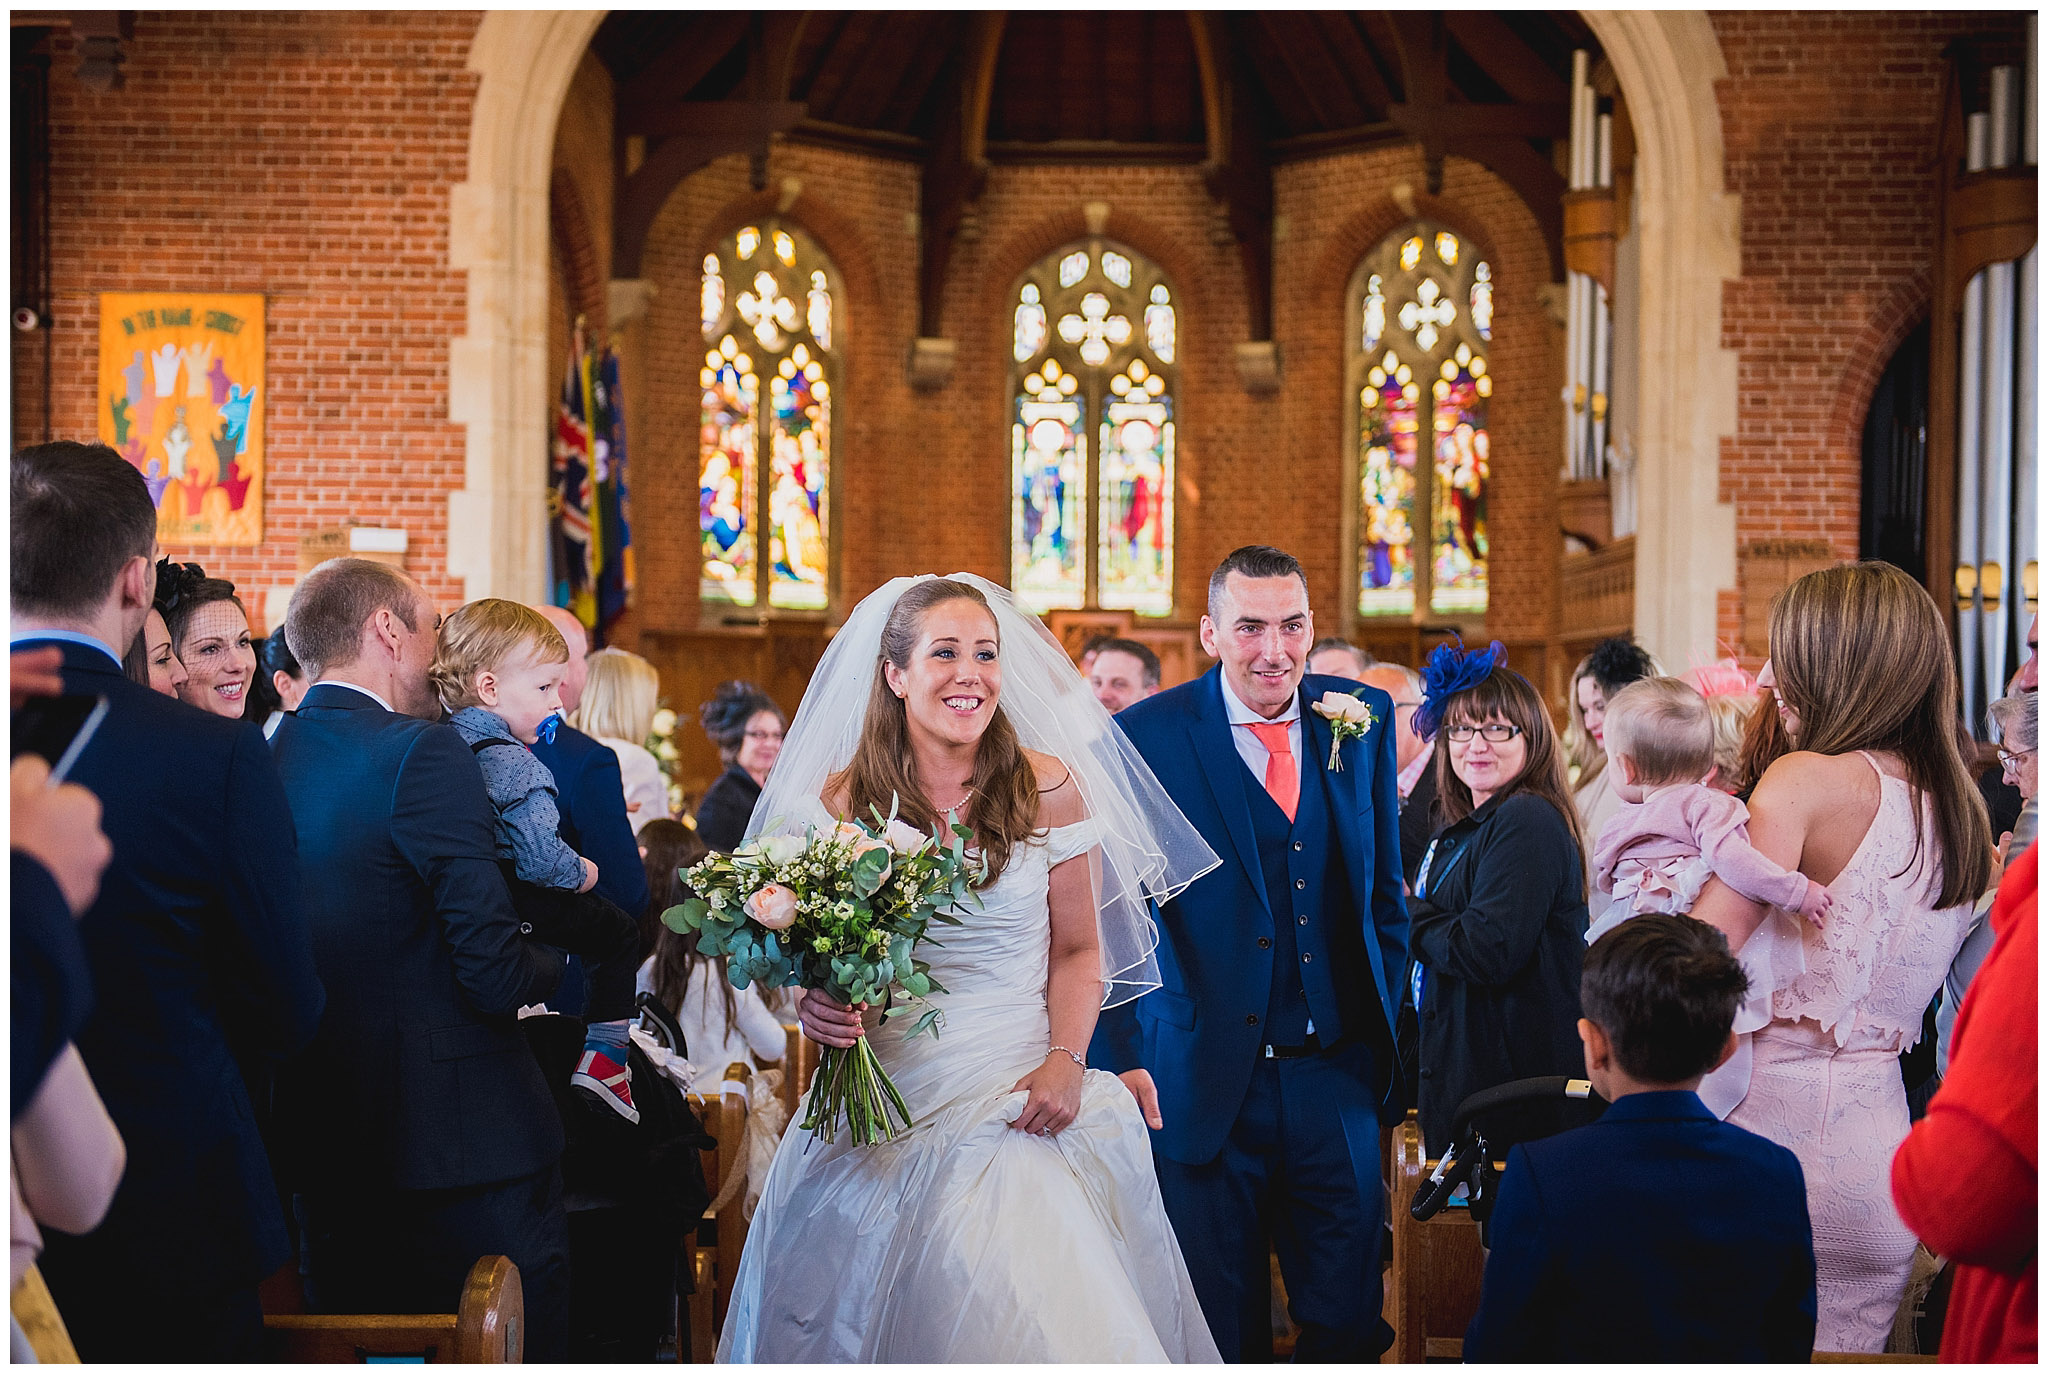 Katie-&-Steve-Victoria-Park-Methodist-Chruch-Winton-&-The-Manor-Burton-Christchurch-Wedding-29